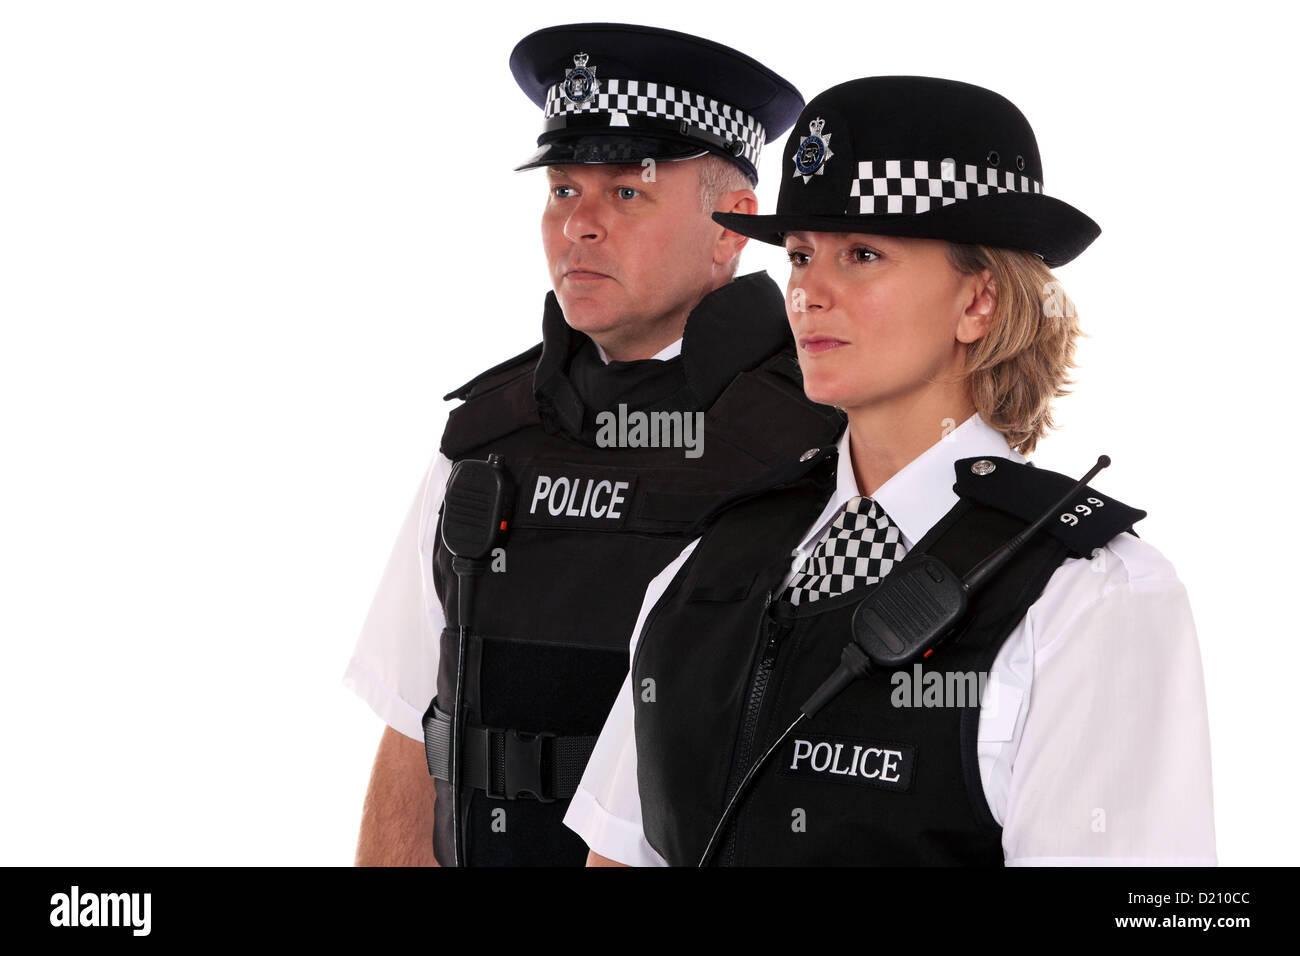 Studio shot of male and female British Police officers in uniform wearing body armour. - Stock Image